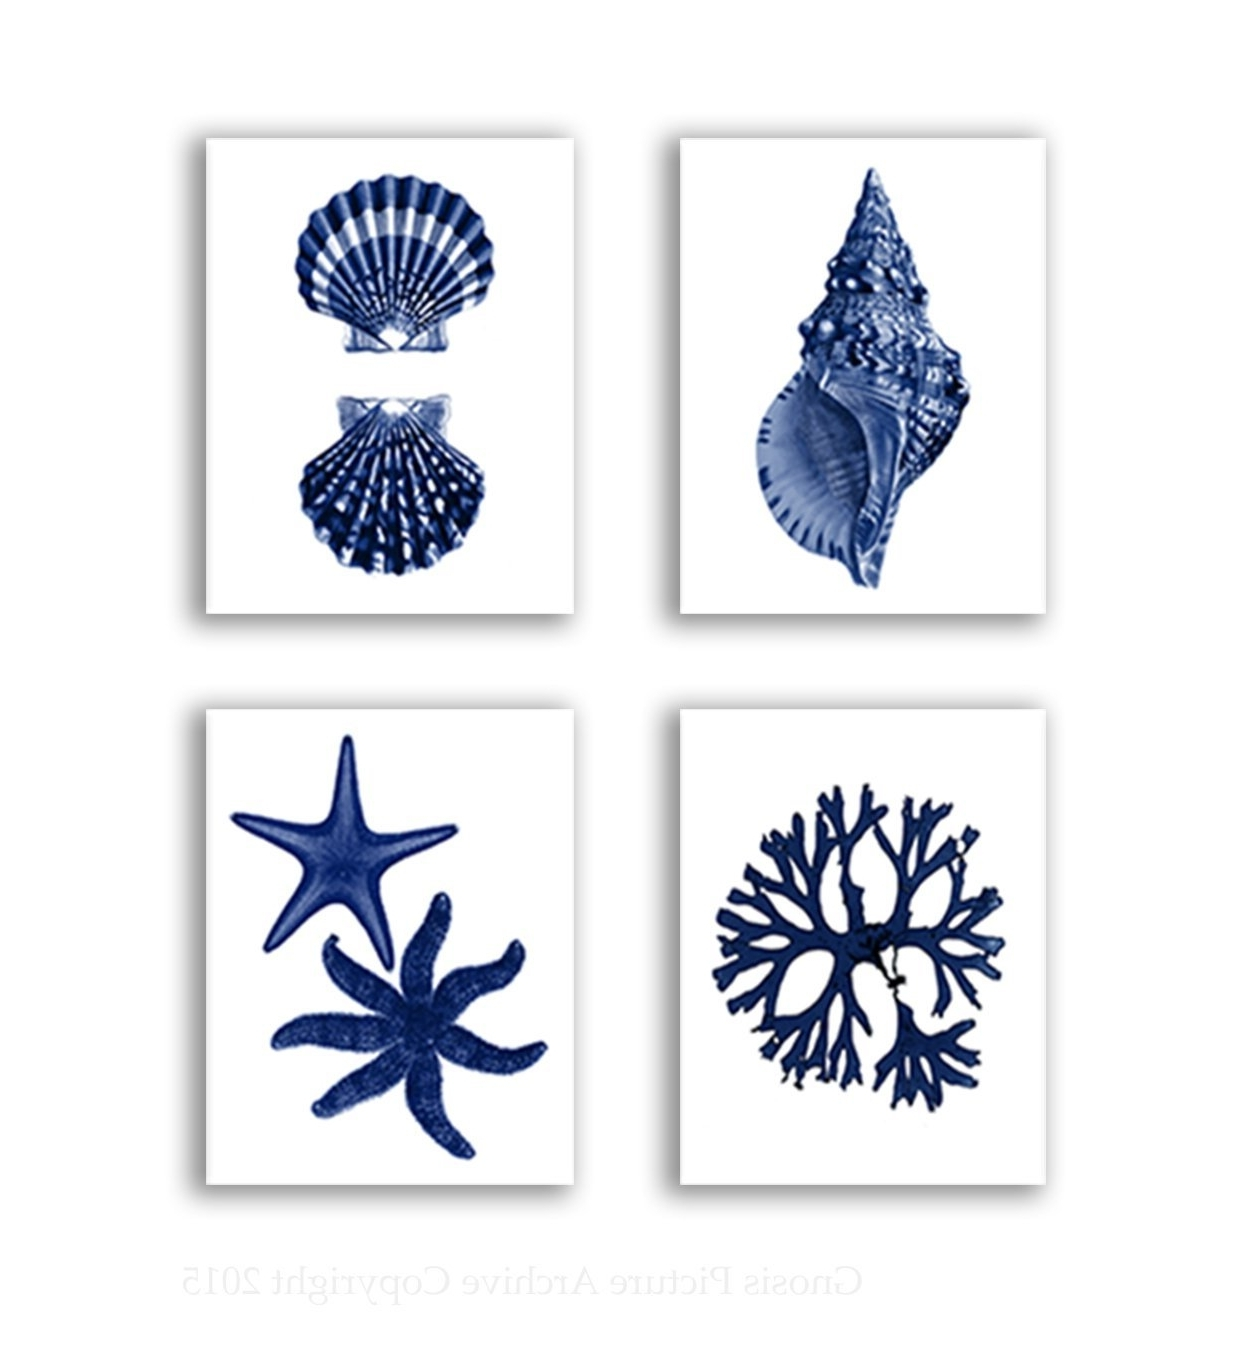 Most Recently Released Navy Blue Wall Art Intended For Amazon: Navy Blue Beach Wall Art Decor Set Of 4 Unframed (View 4 of 15)